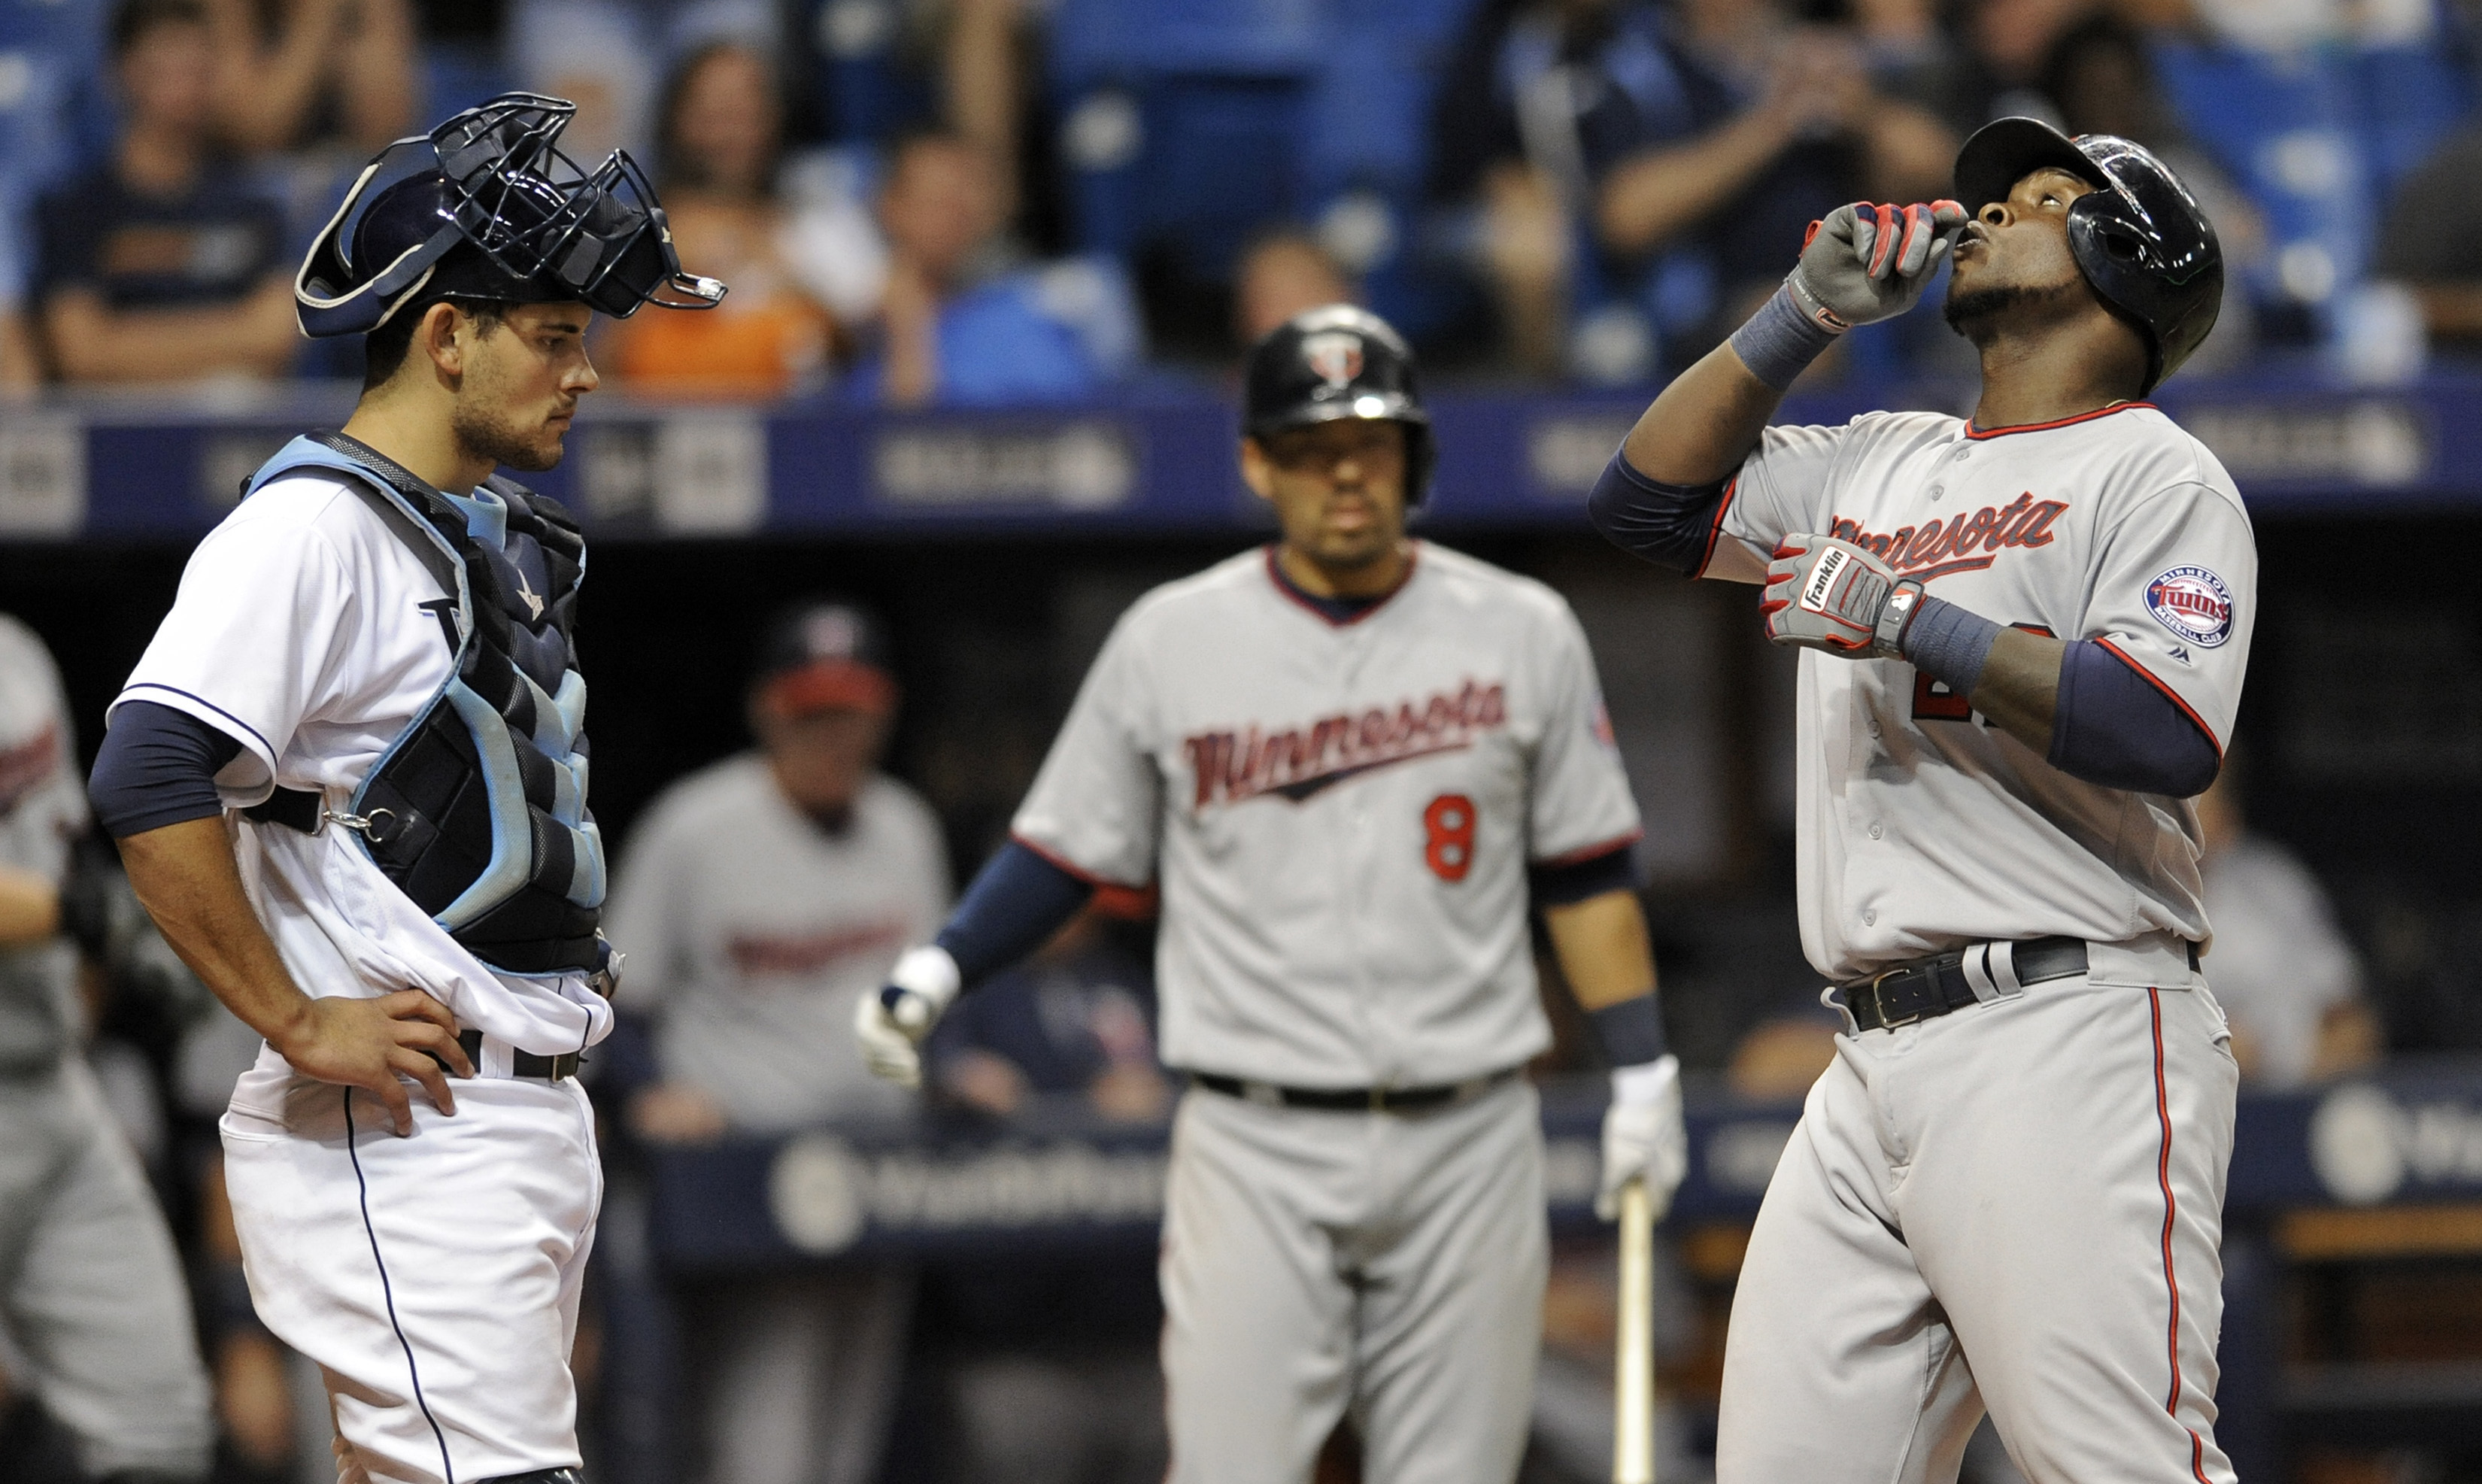 Minnesota Twins' Kurt Suzuki (8) and Tampa Bay Rays catcher Luke Maile, left, looks on as Minnesota's Miguel Sano, right, crosses home plate after hitting a solo home run off Tampa Bay reliever Erasmo Ramirez during the eighth inning of a baseball game Fr